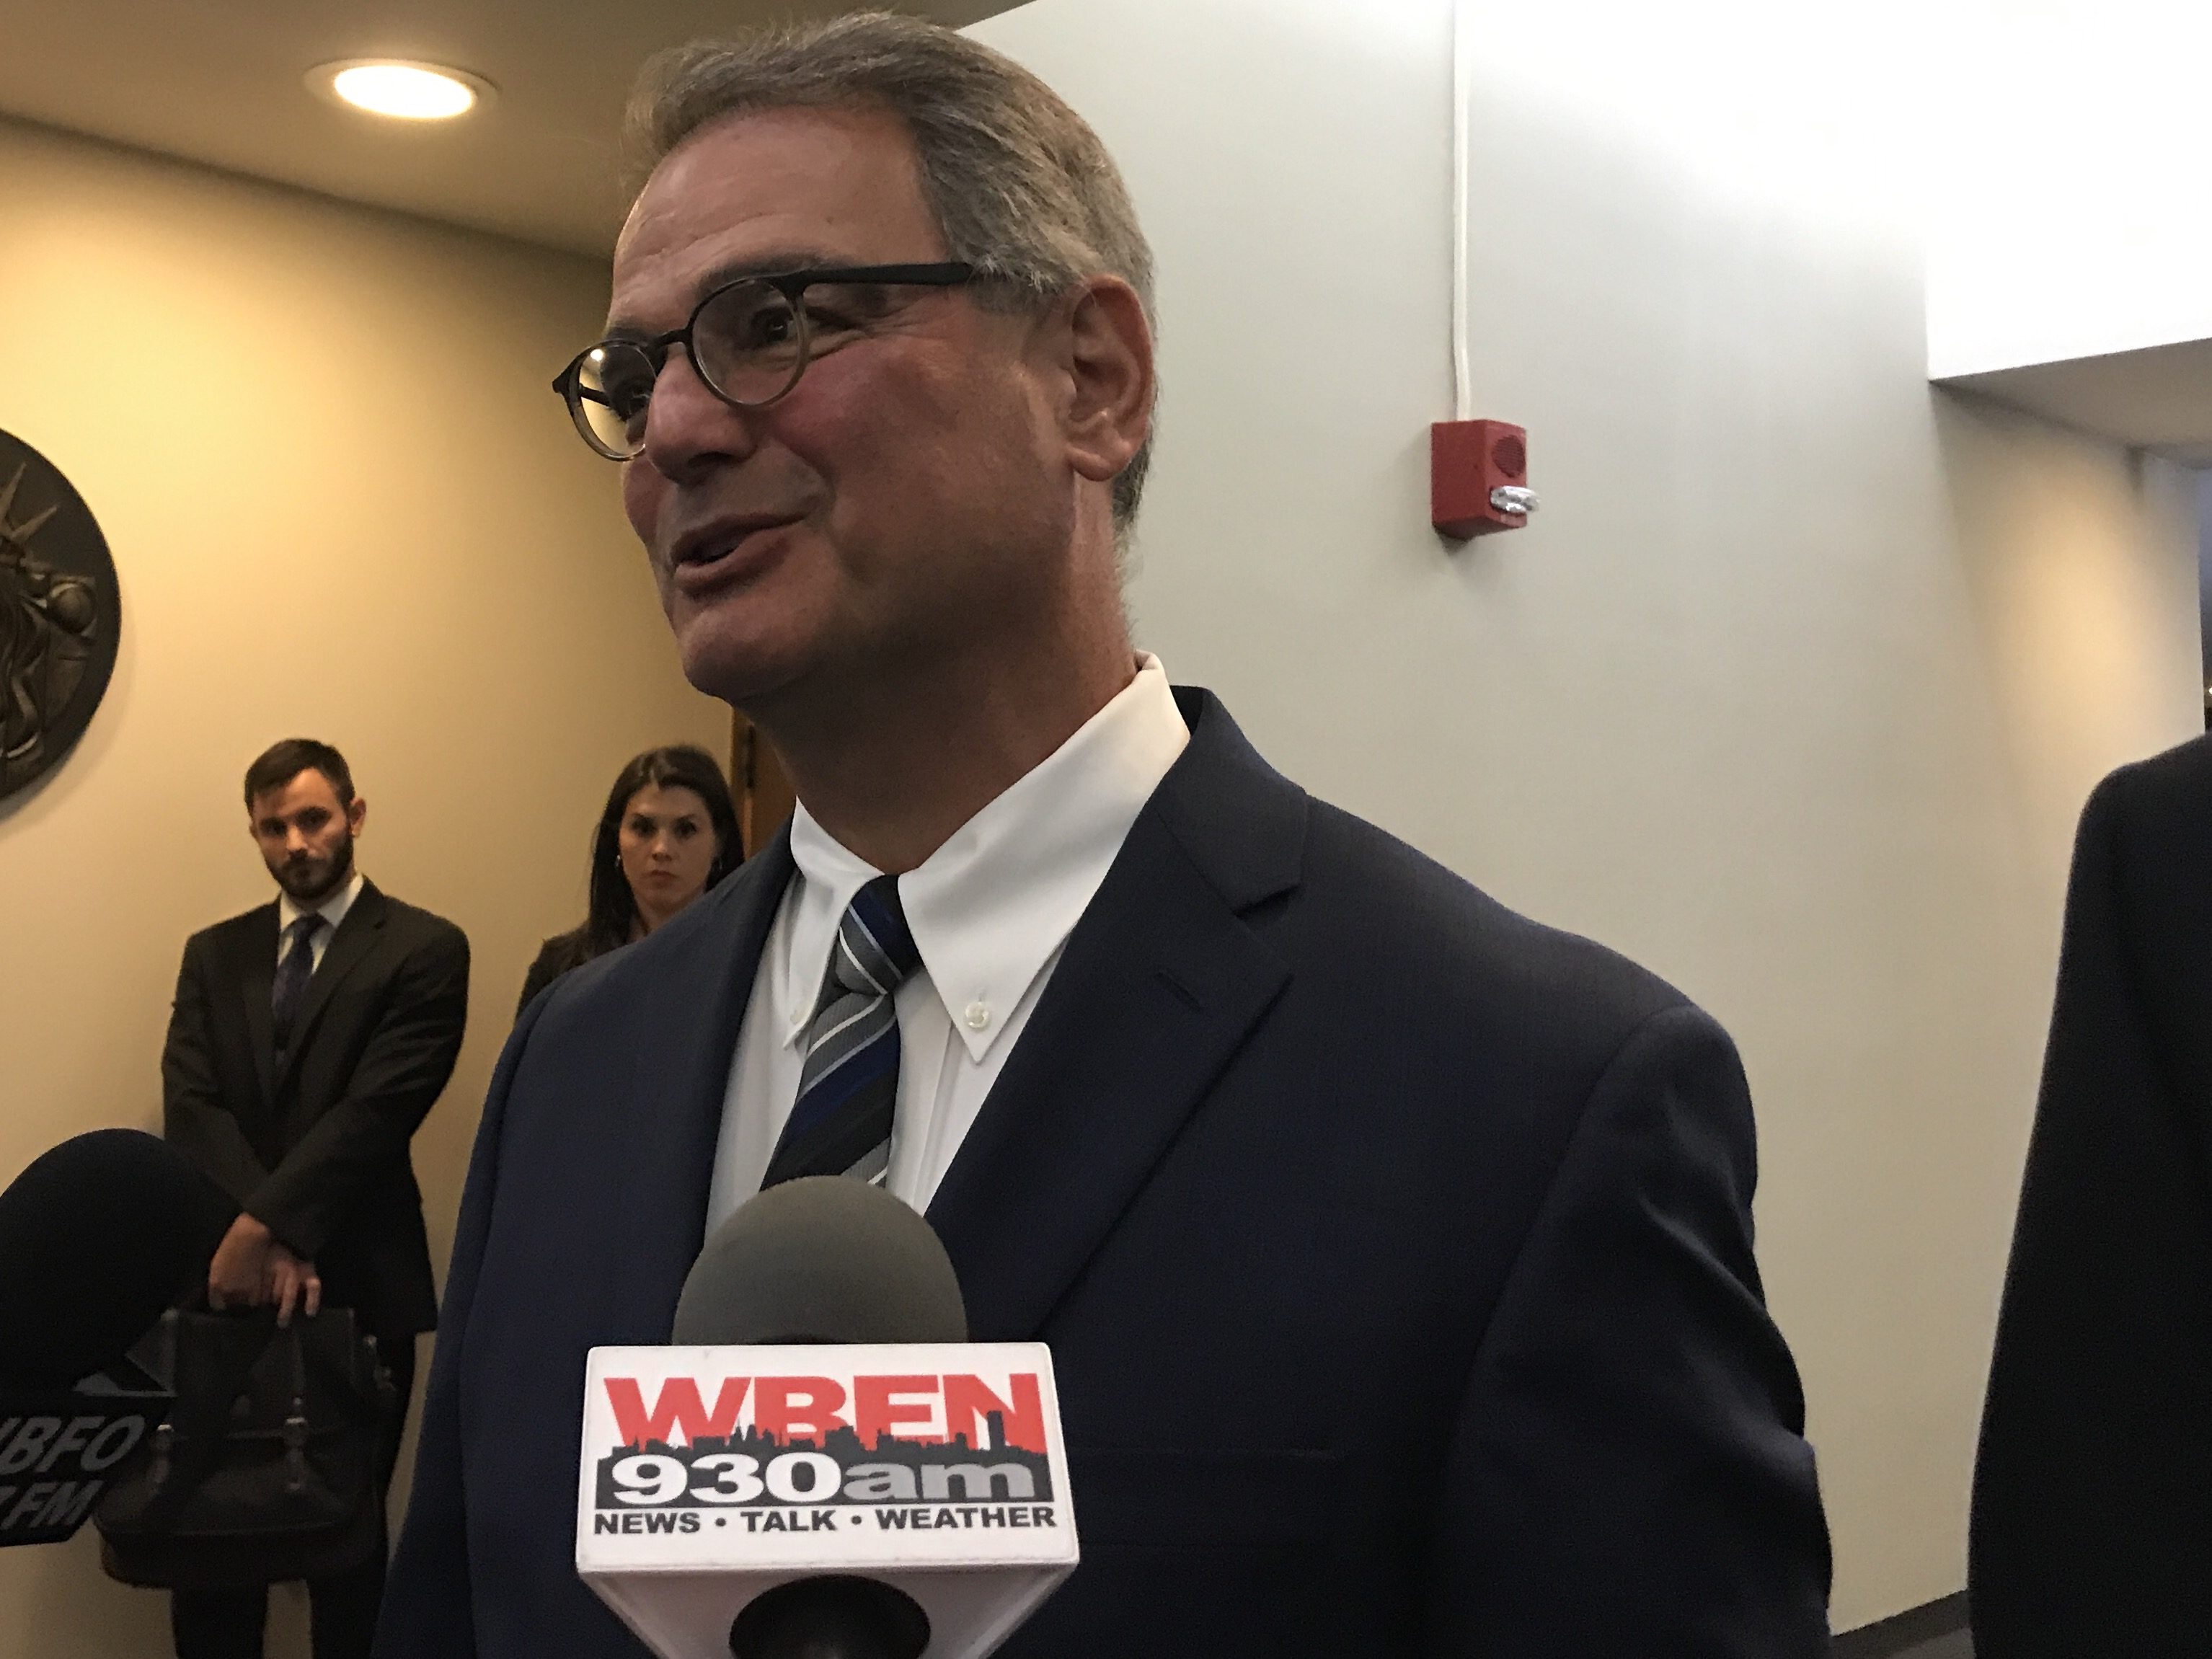 are attorneys for barns court file to buffalo and progress effort the scheduled thursday barnes cellino seen mediation news no appear in